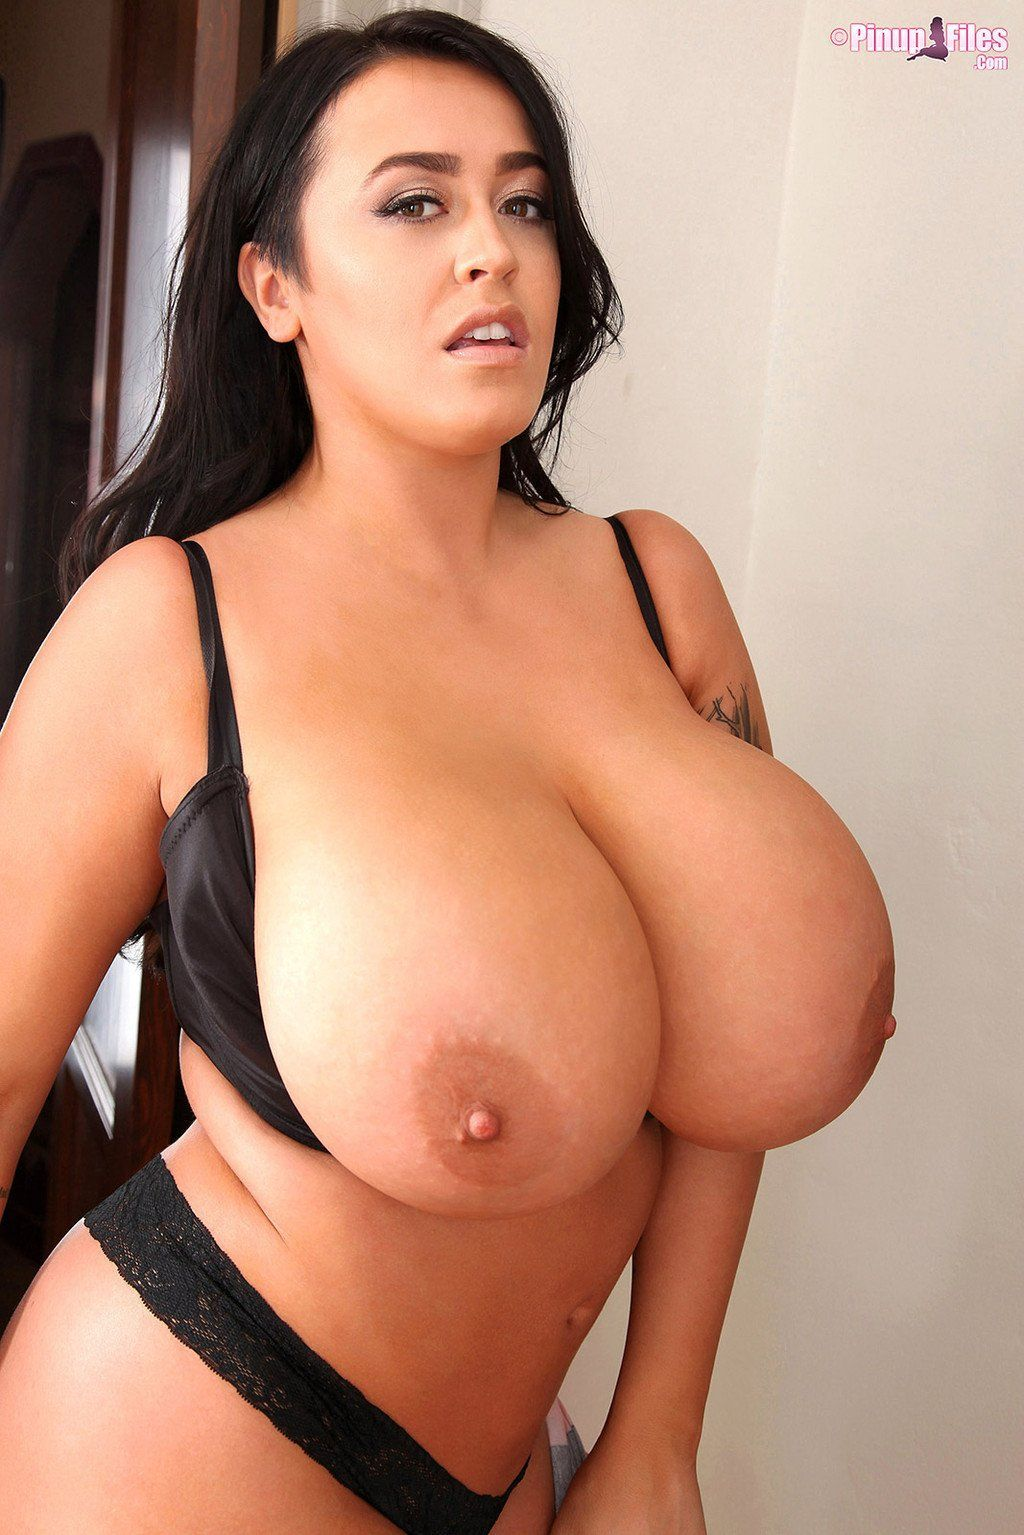 Sunflower reccomend Big boob solo HQ Photo Porno